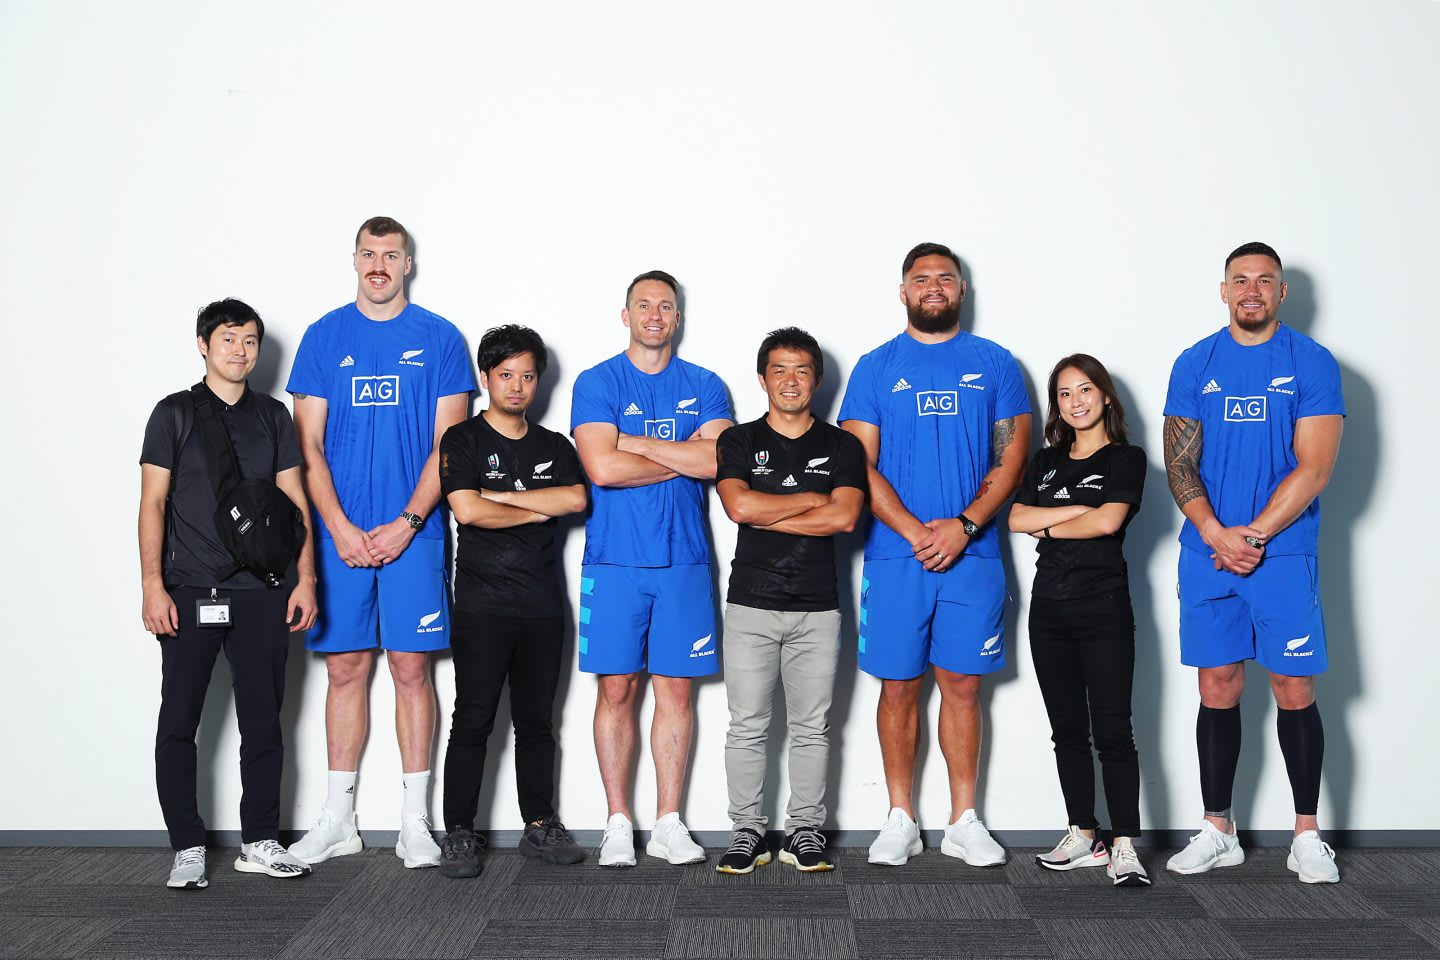 Ando with his team and the rugby national team. Project planning, adidas, Olympics, Tokyo